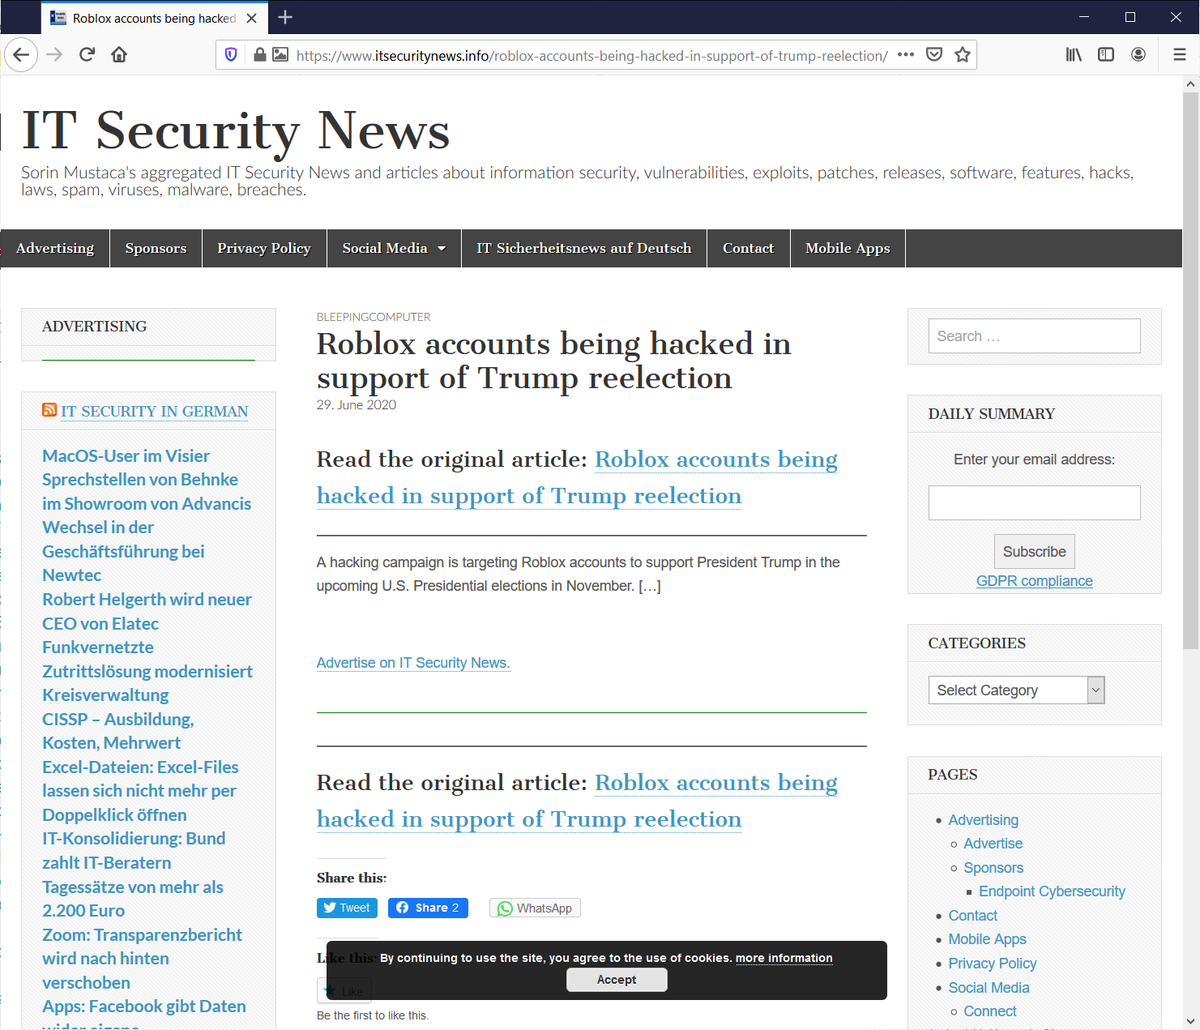 @kanishkT23 @dannysullivan @SwiftOnSecurity It gets better. This site consistently is on the first page of google and just has links to other stories. This is a mess